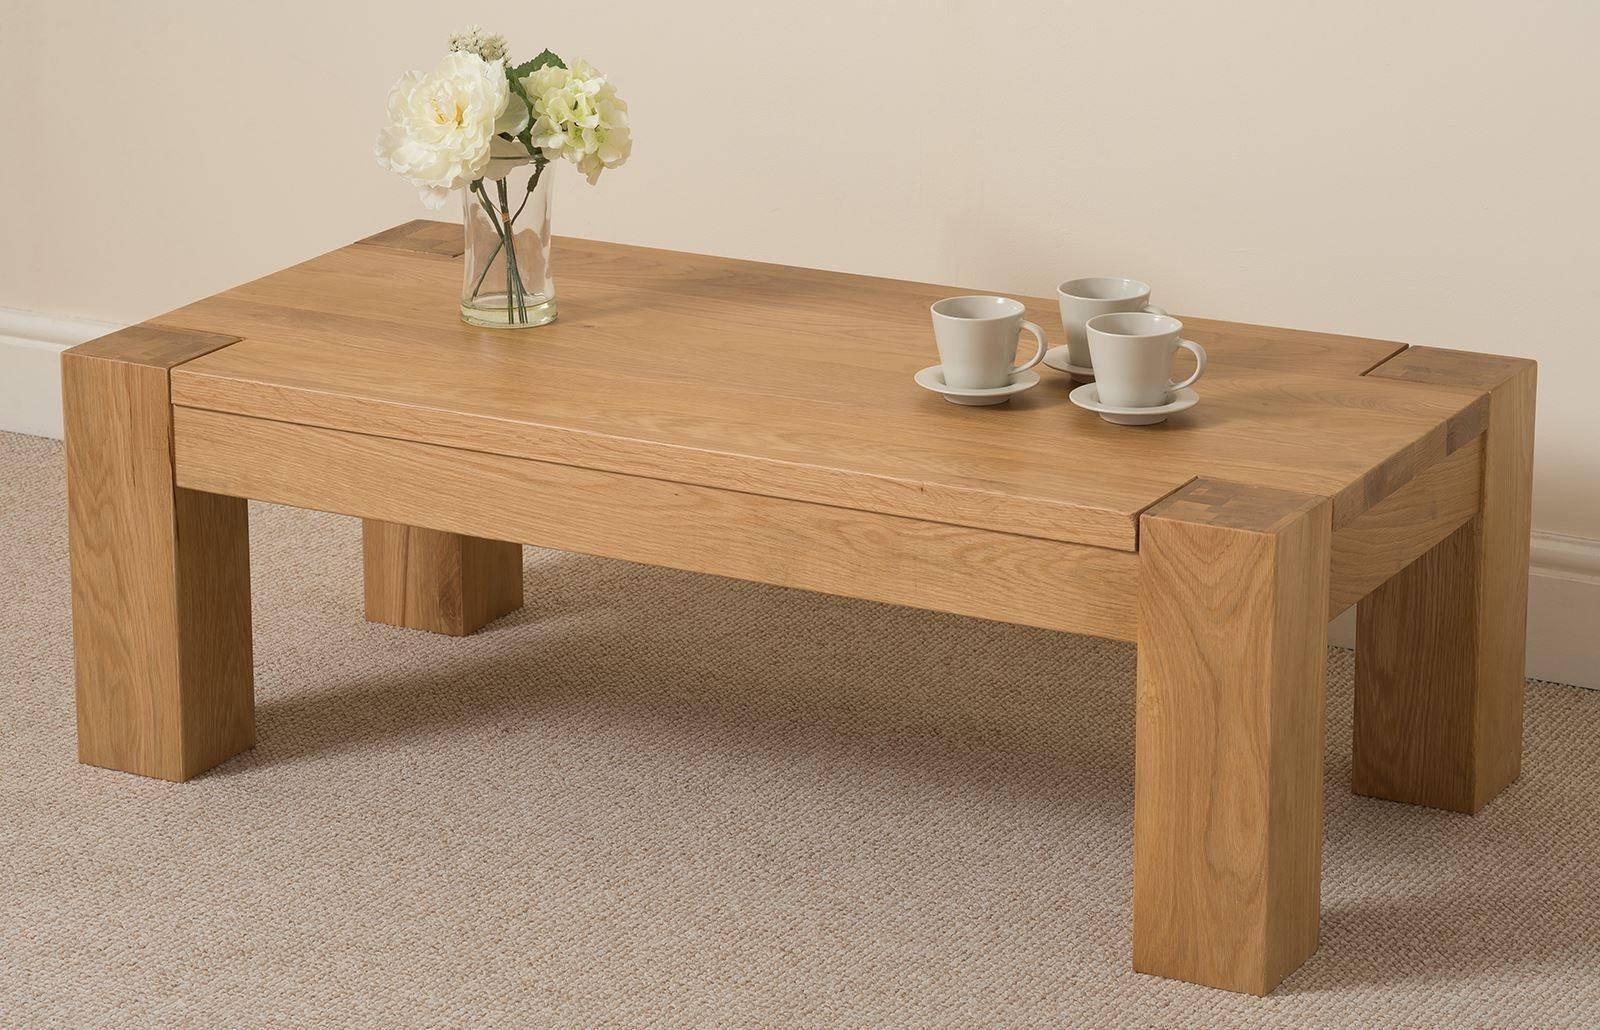 Kuba Solid Oak Large Coffee Table | Oak Furniture King within Oak Furniture Coffee Tables (Image 8 of 15)